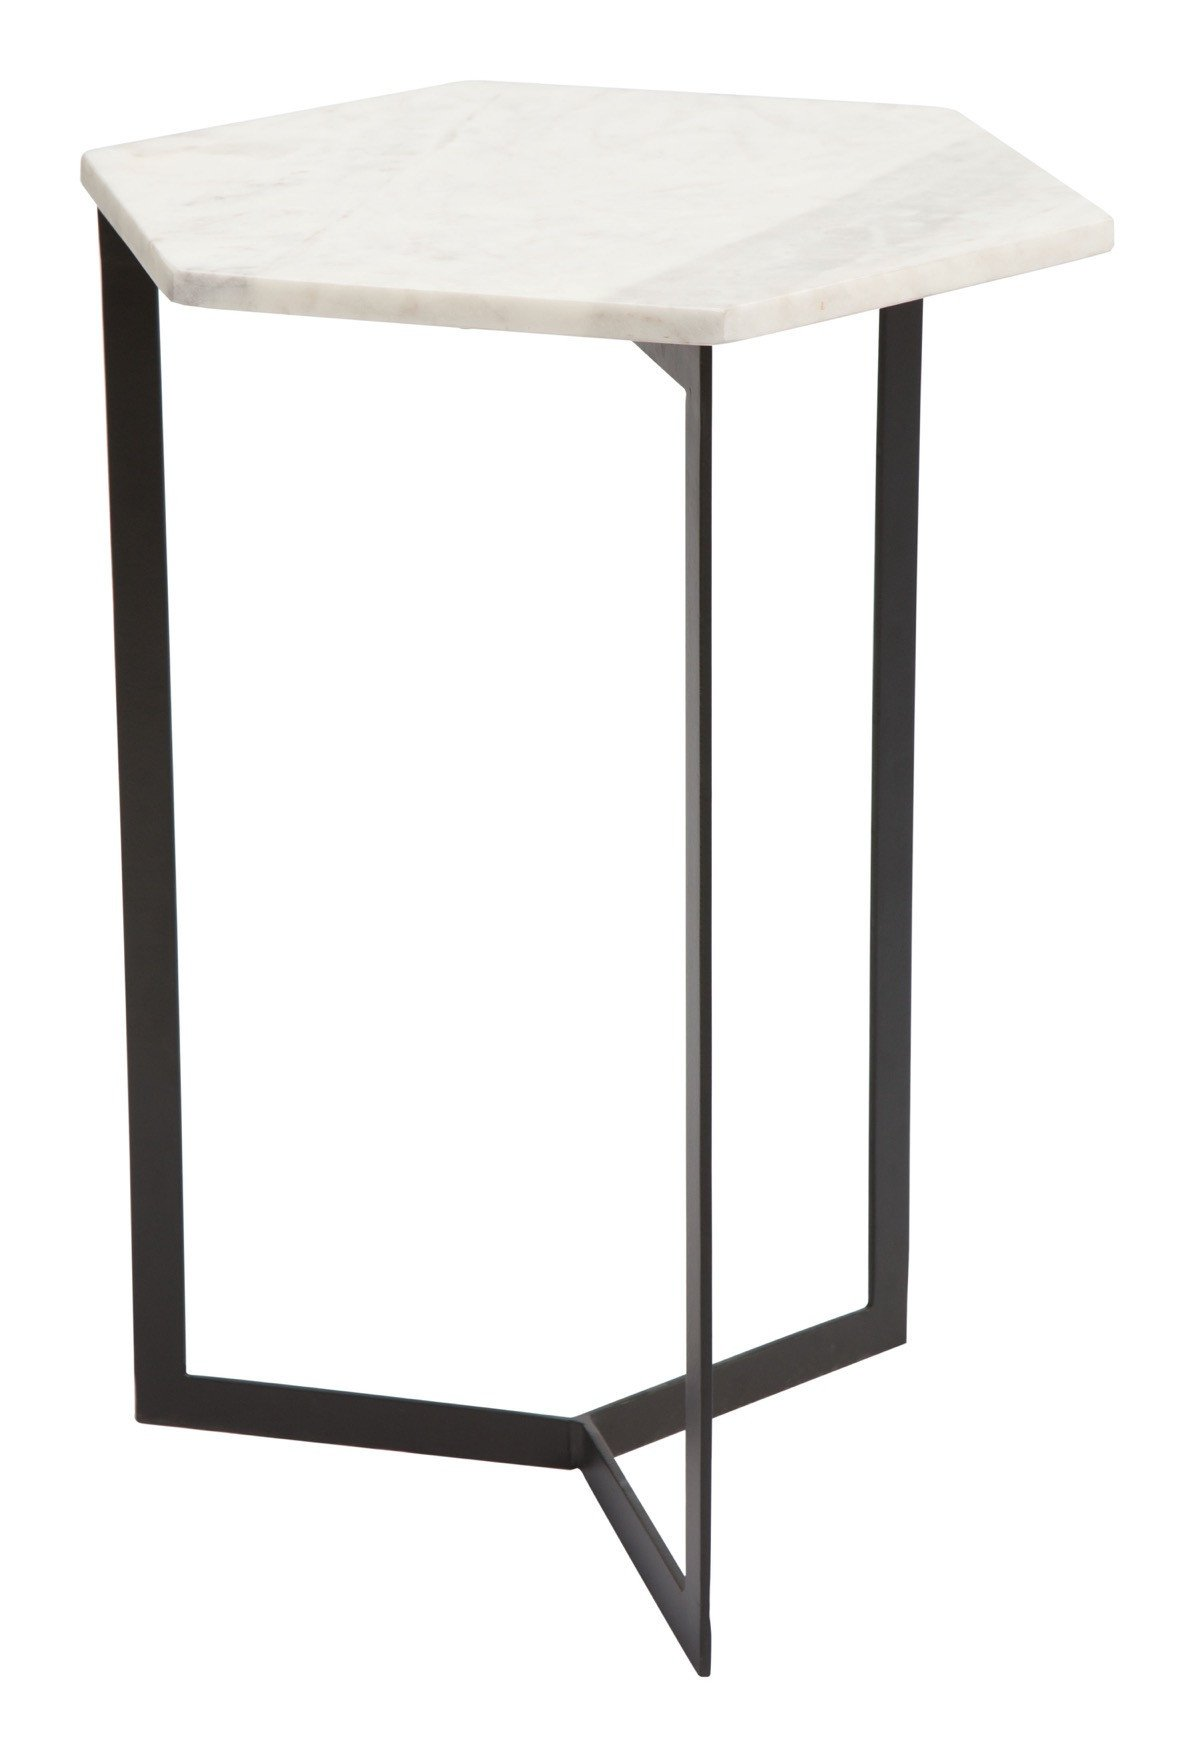 rys accent table with hexagon white faux marble top black iron base side tables alan decor room essentials queen comforter potting brass coffee tall dining sets ikea garden pots